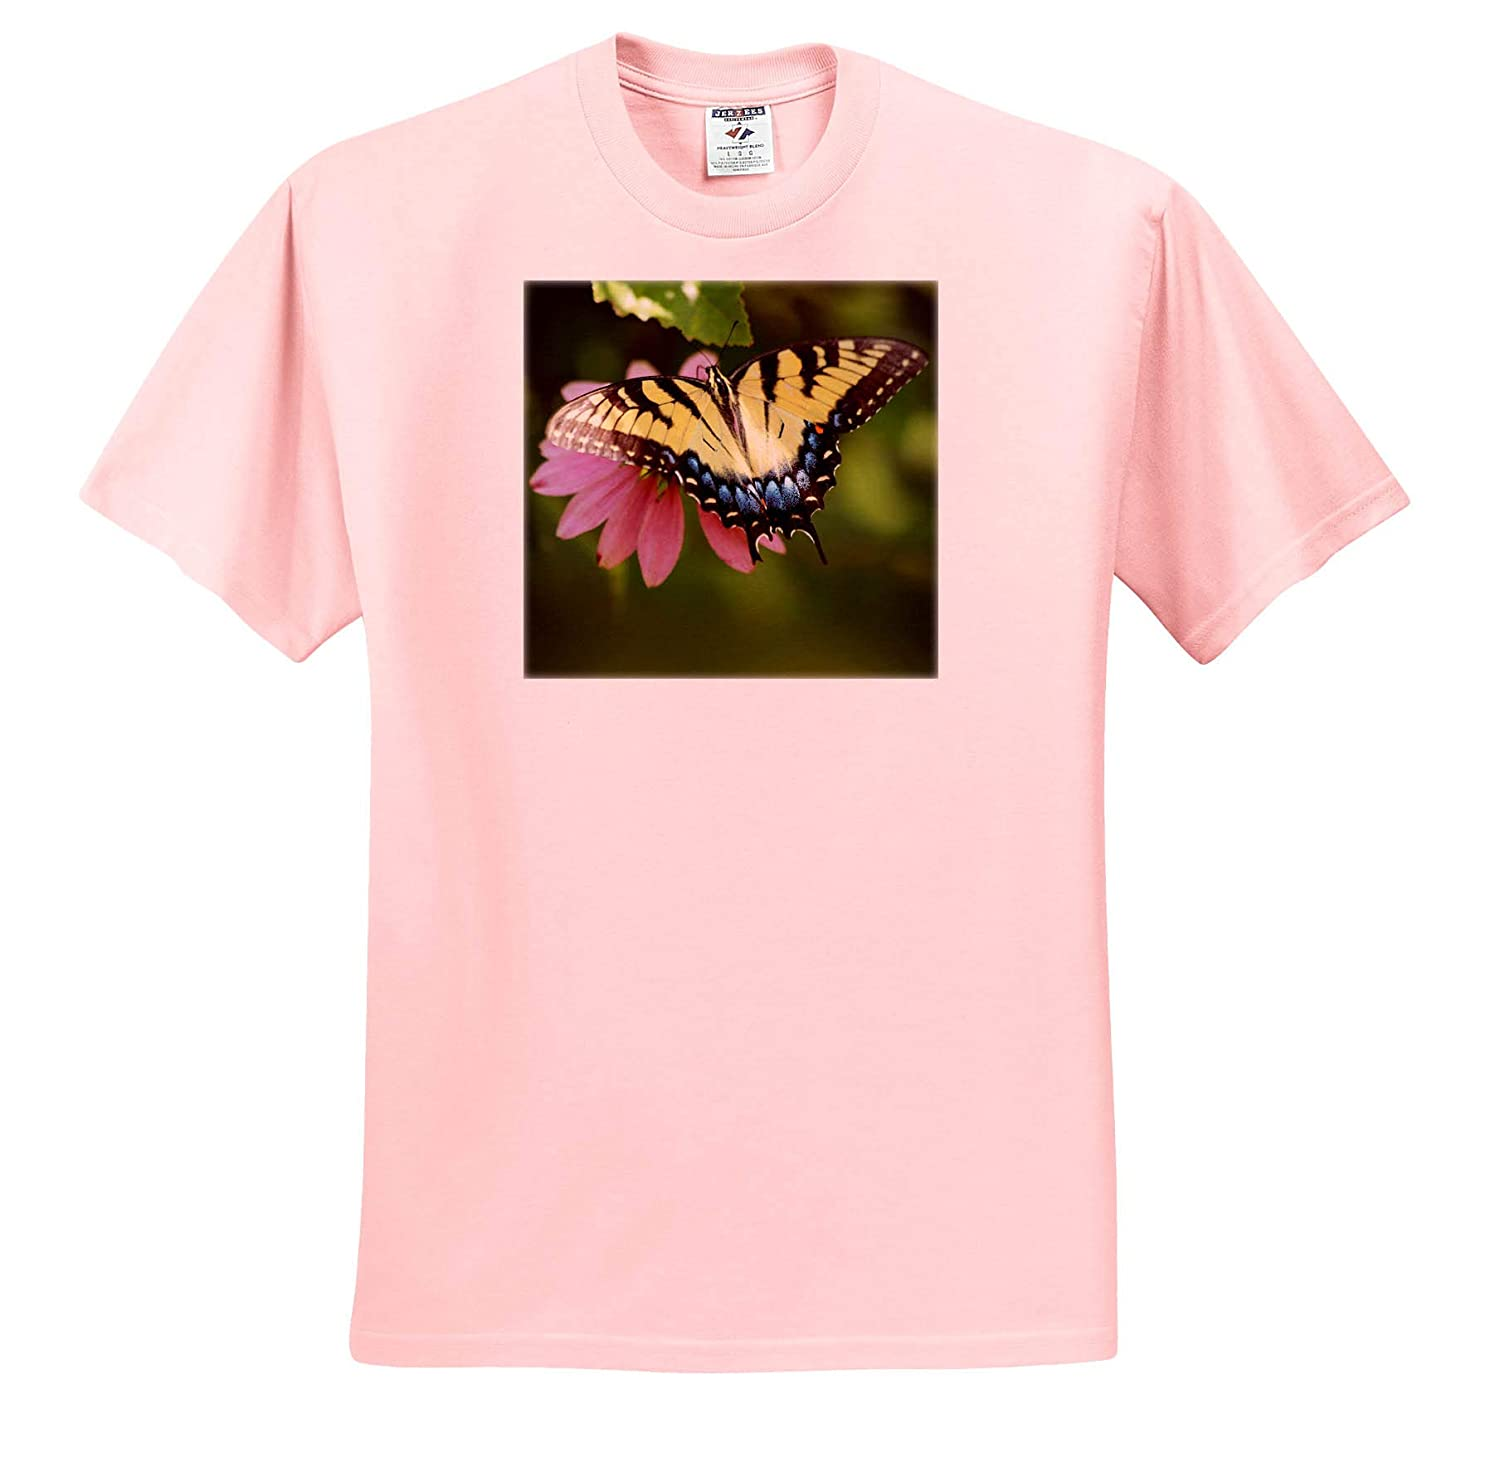 3dRose Stamp City Top View Macro Photograph of an Eastern Tiger Swallowtail - Adult T-Shirt XL Insect ts/_320187